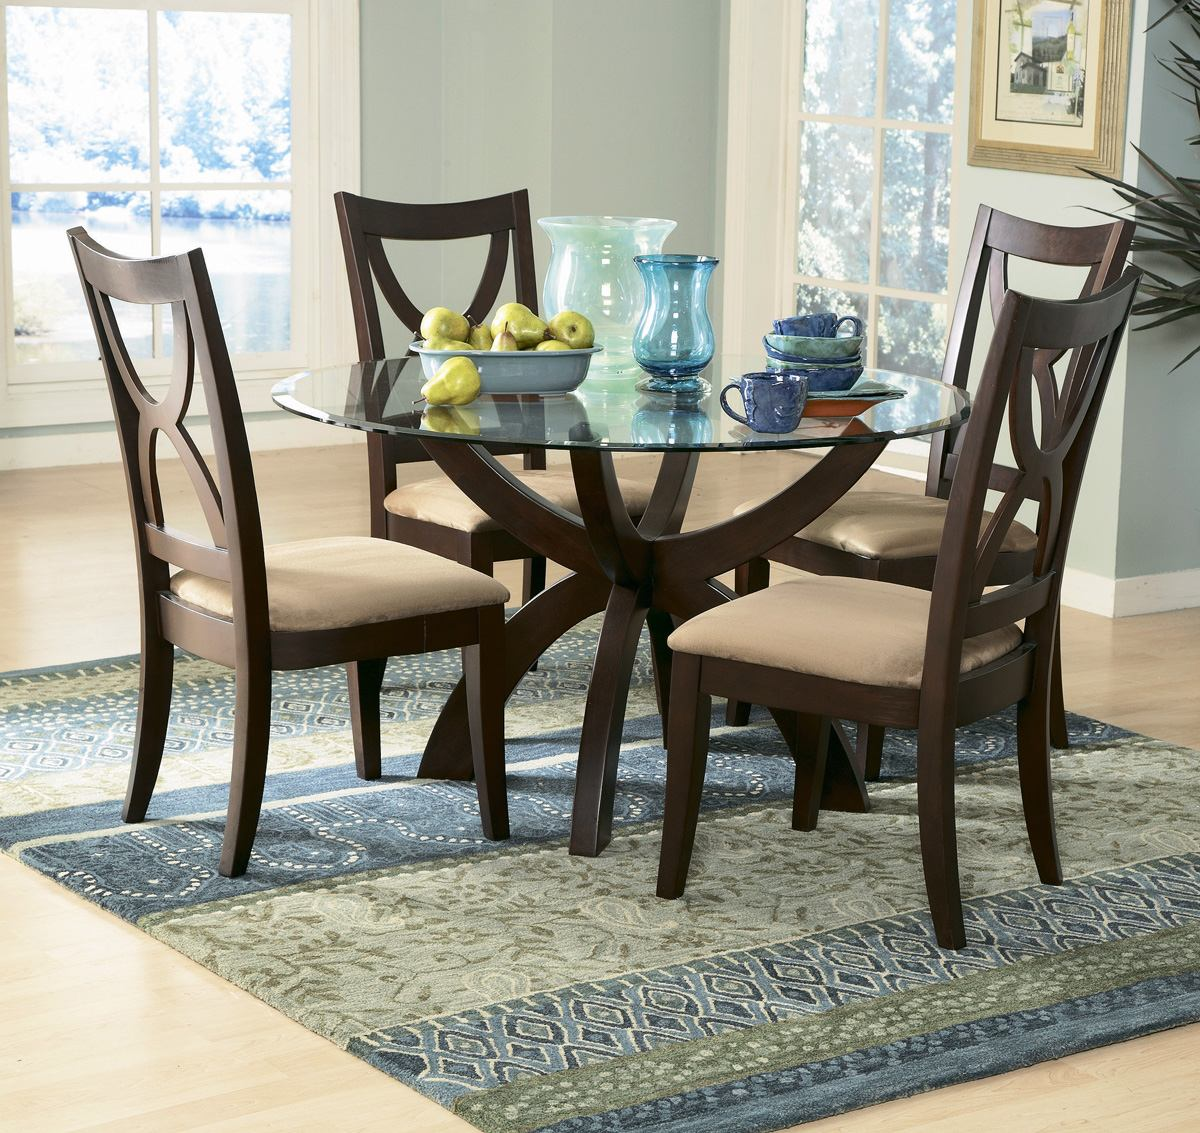 Picture of: Round espresso dining table and chairs